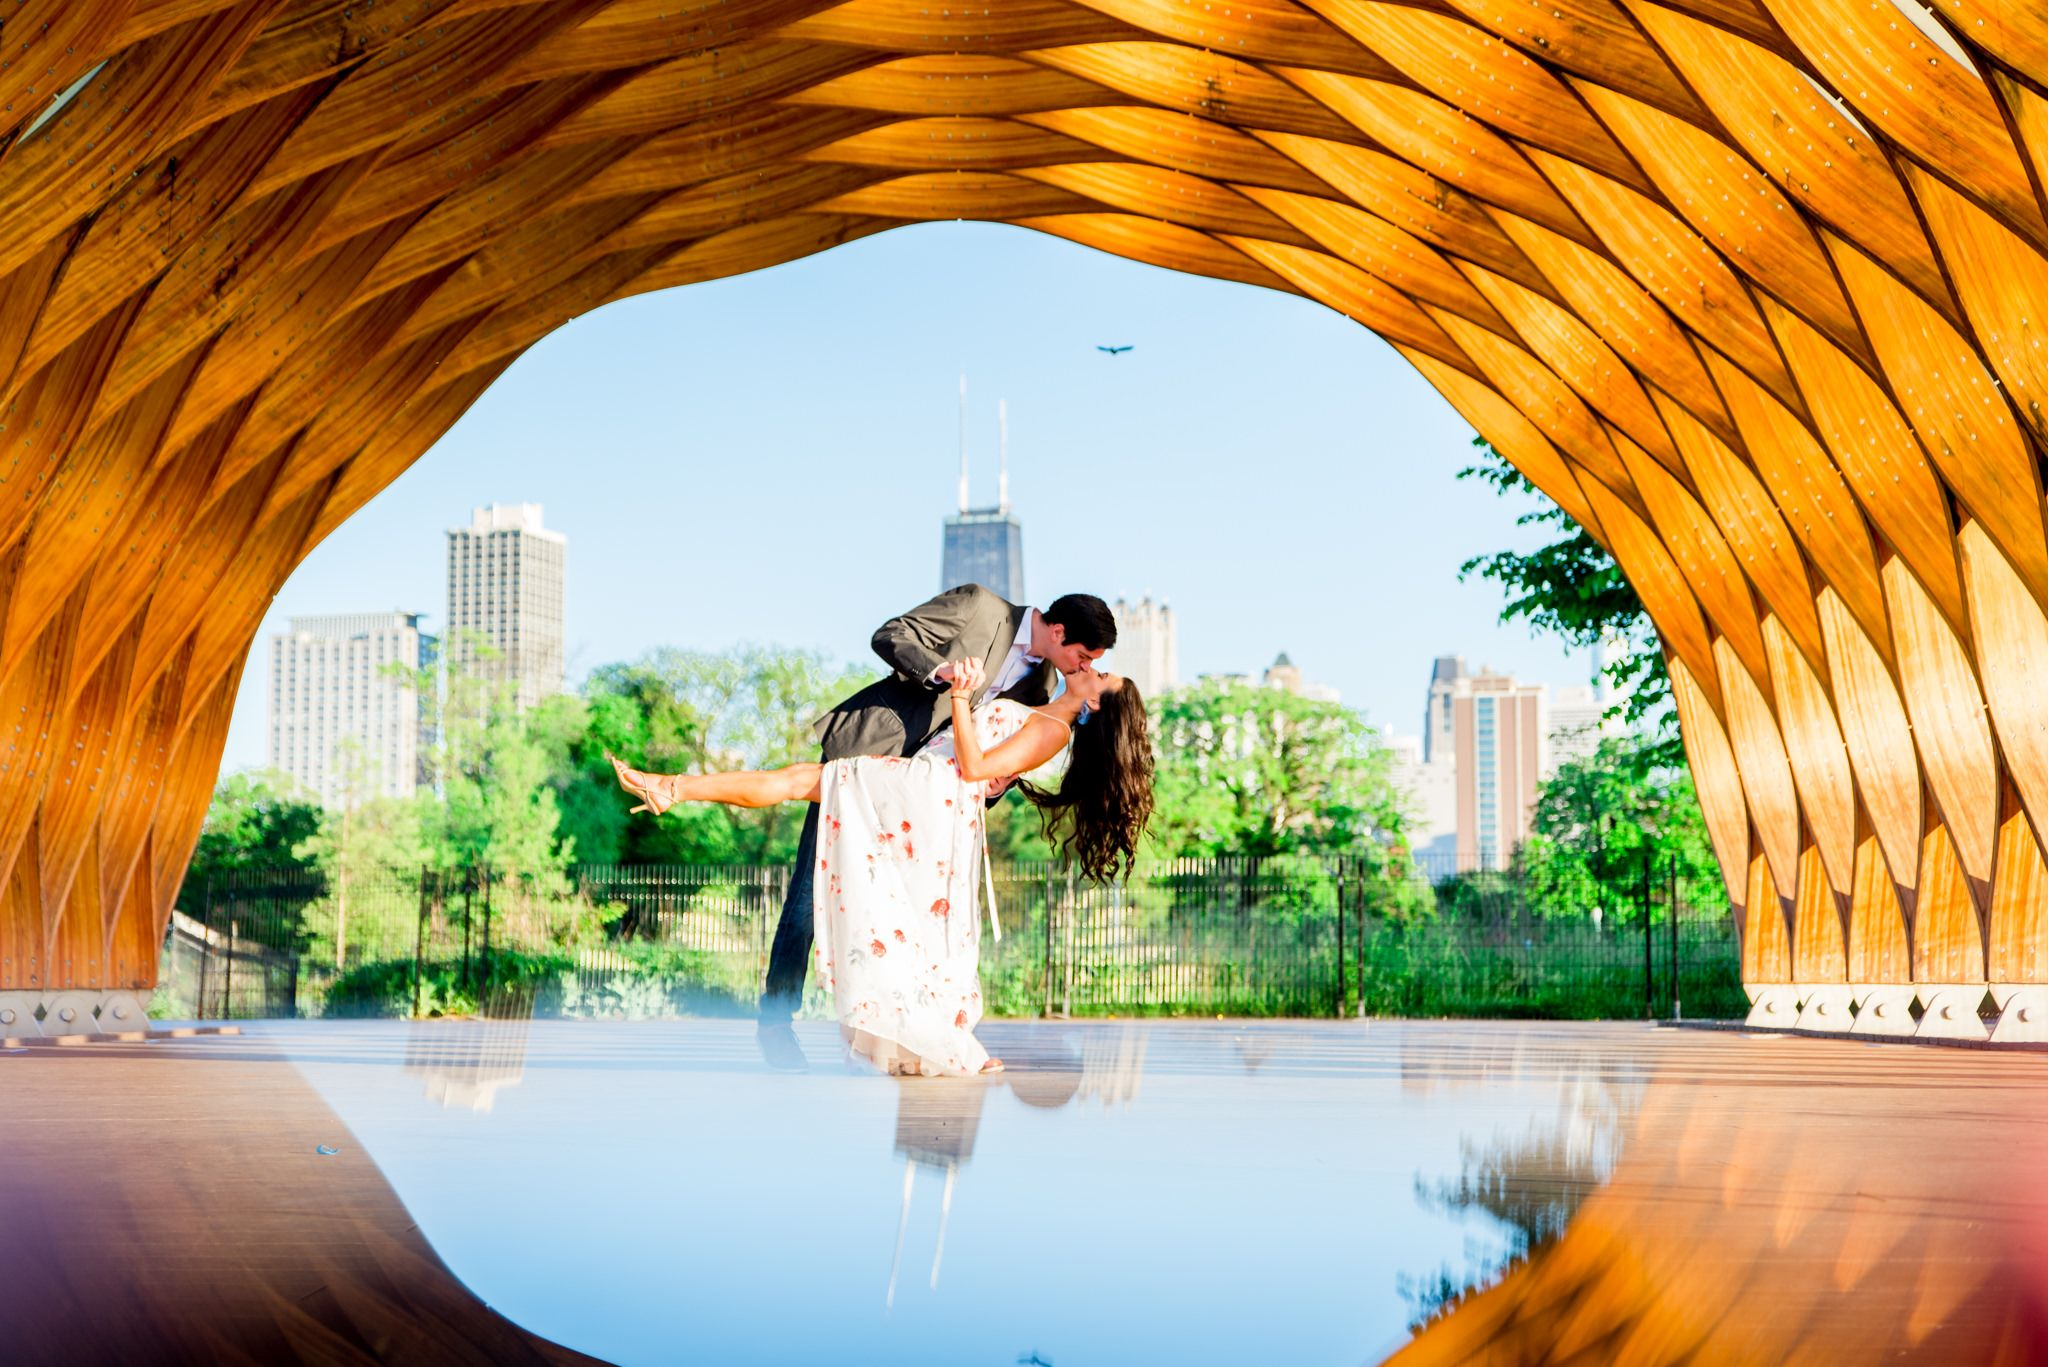 man in suit dipping and kissing woman under Honeycomb at Lincoln Park for engagement pictures in Chicago at sunset